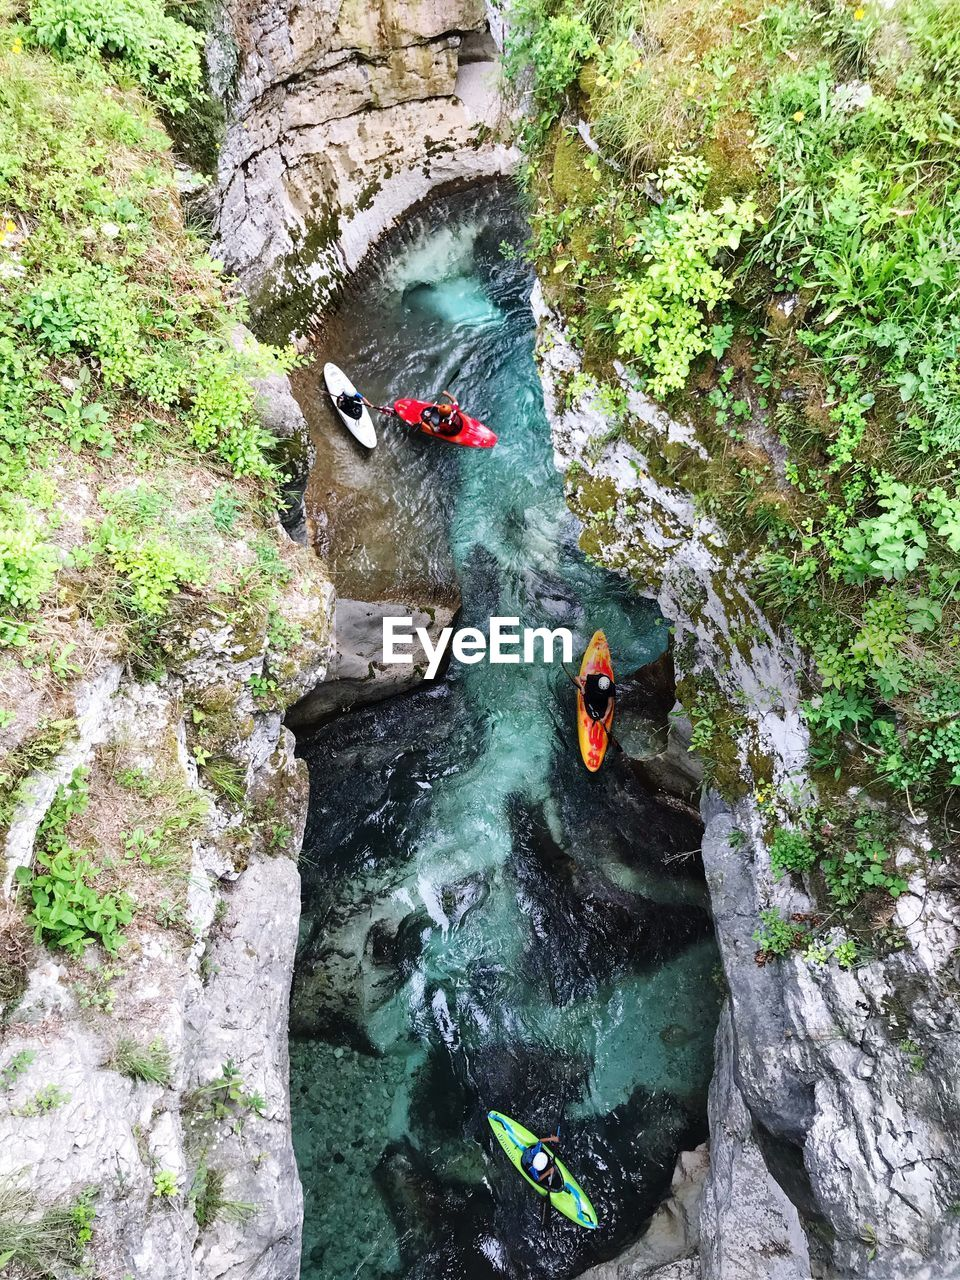 High Angle View Of People Kayaking On River Amidst Rock Formation